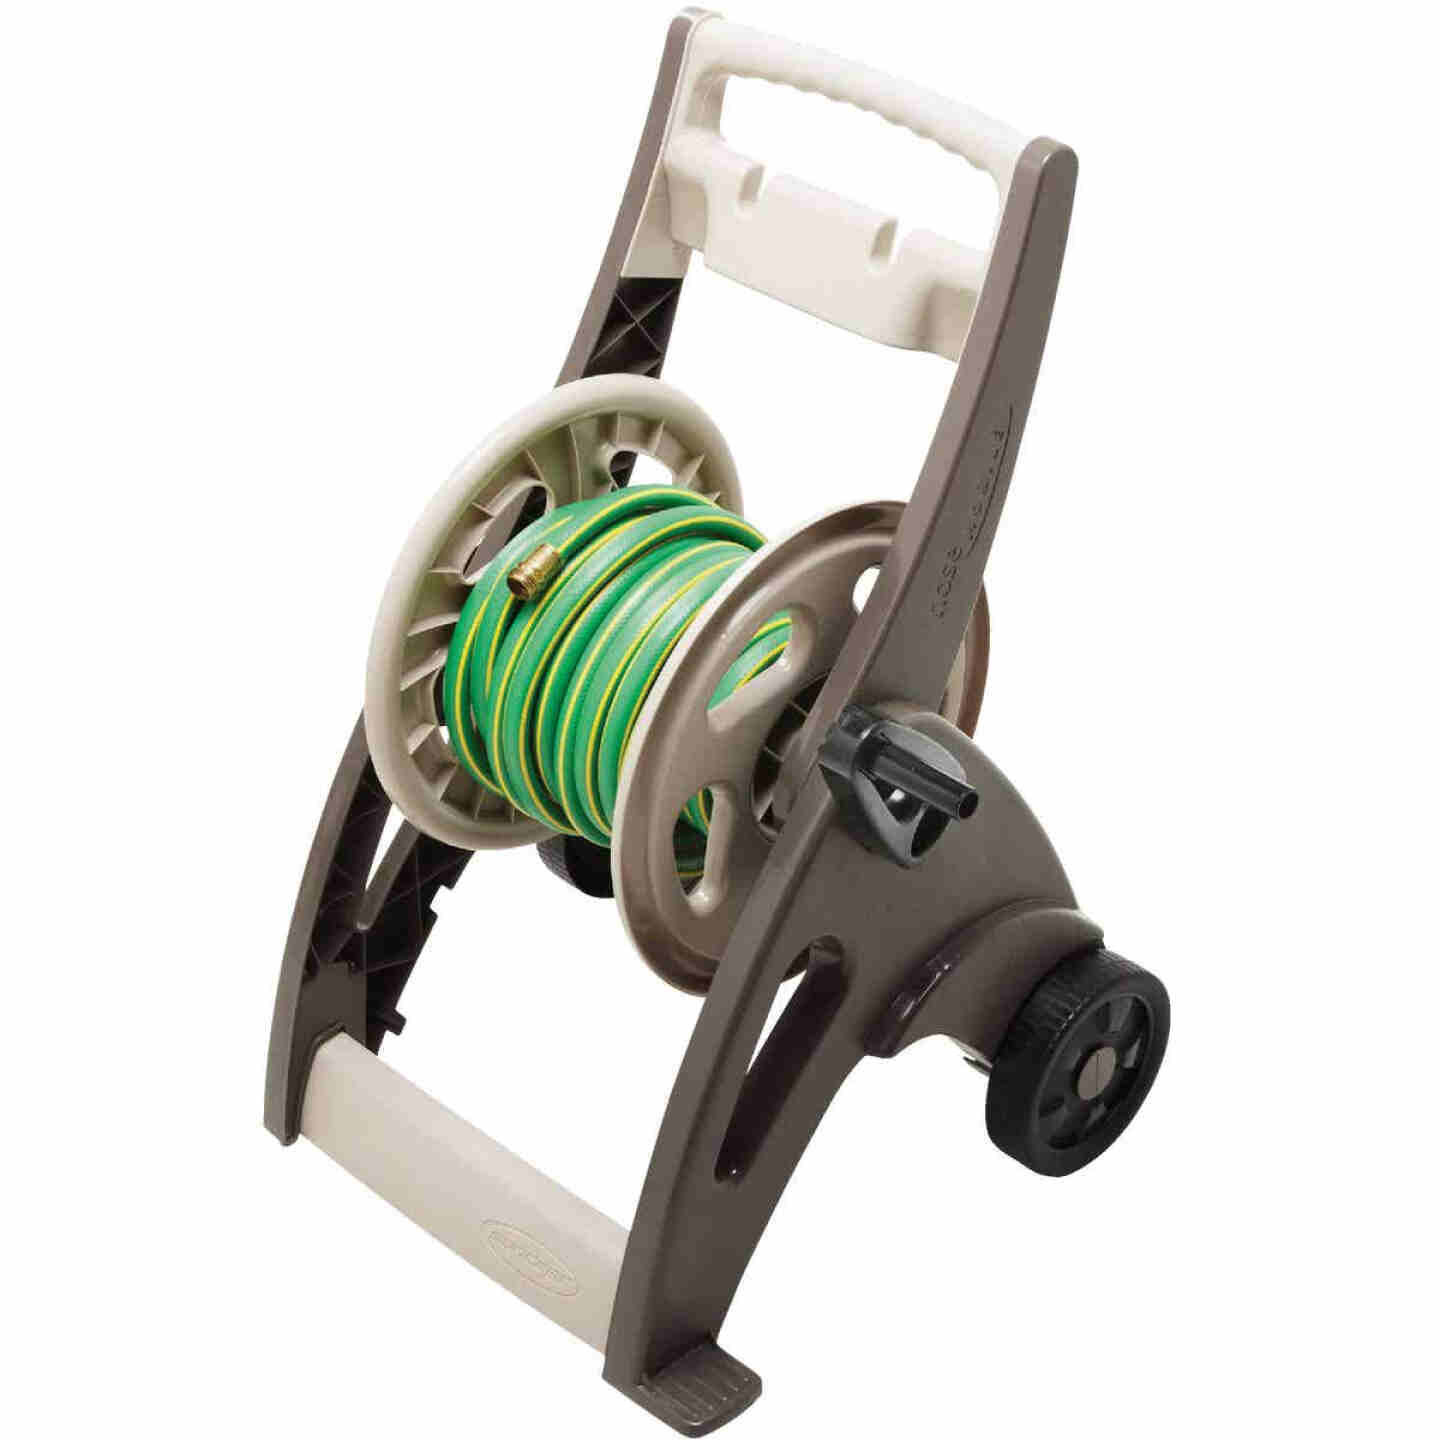 Suncast 175 Ft. x 5/8 In. Bronze Hosemobile Resin Hose Reel Image 4